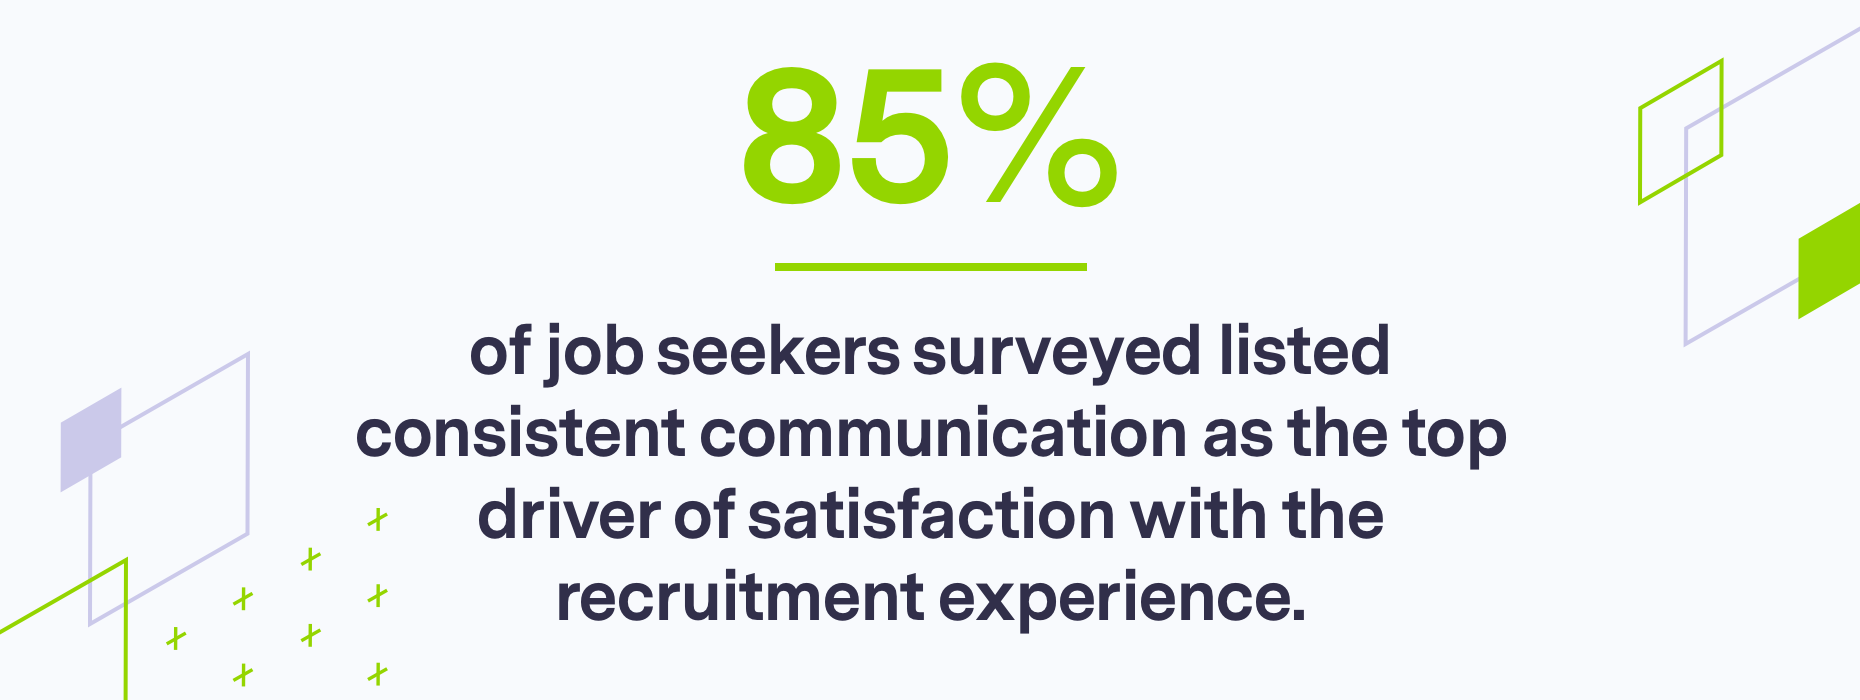 Branded stat for positive interview experience